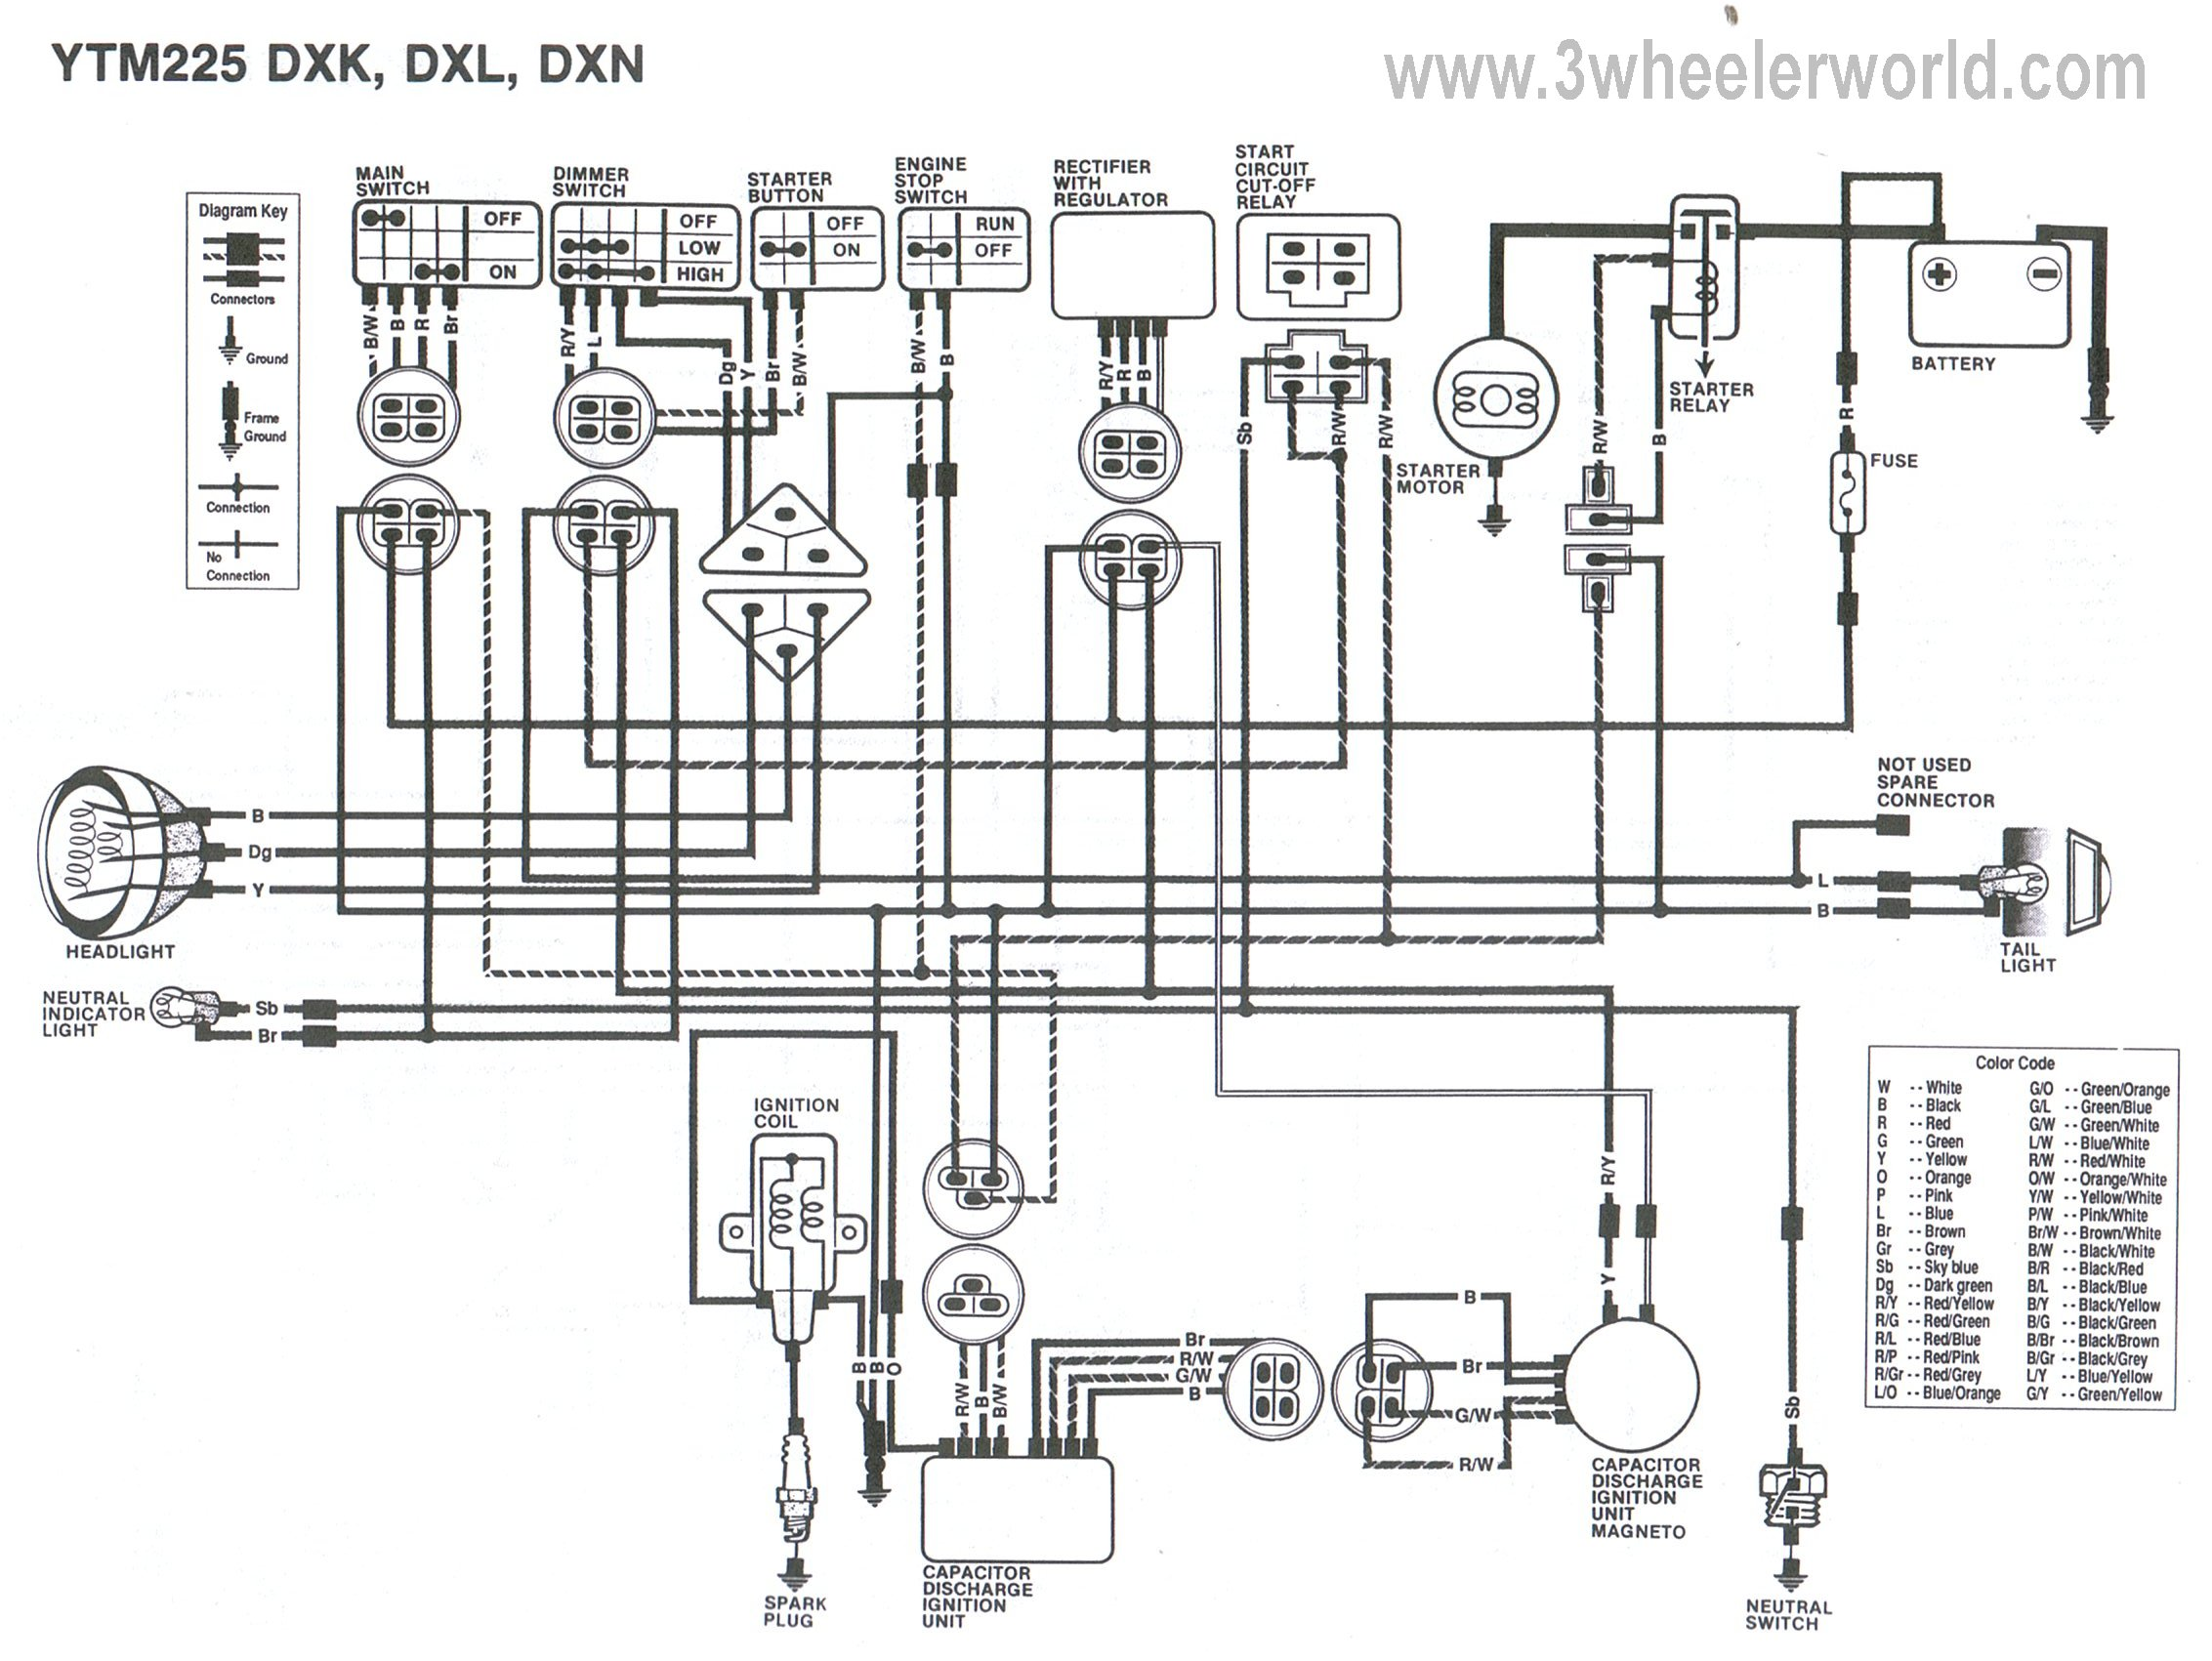 YTM225DXKDXLDXN 3 wheeler world tech help yamaha wiring diagrams ttr 225 wiring diagram at bakdesigns.co